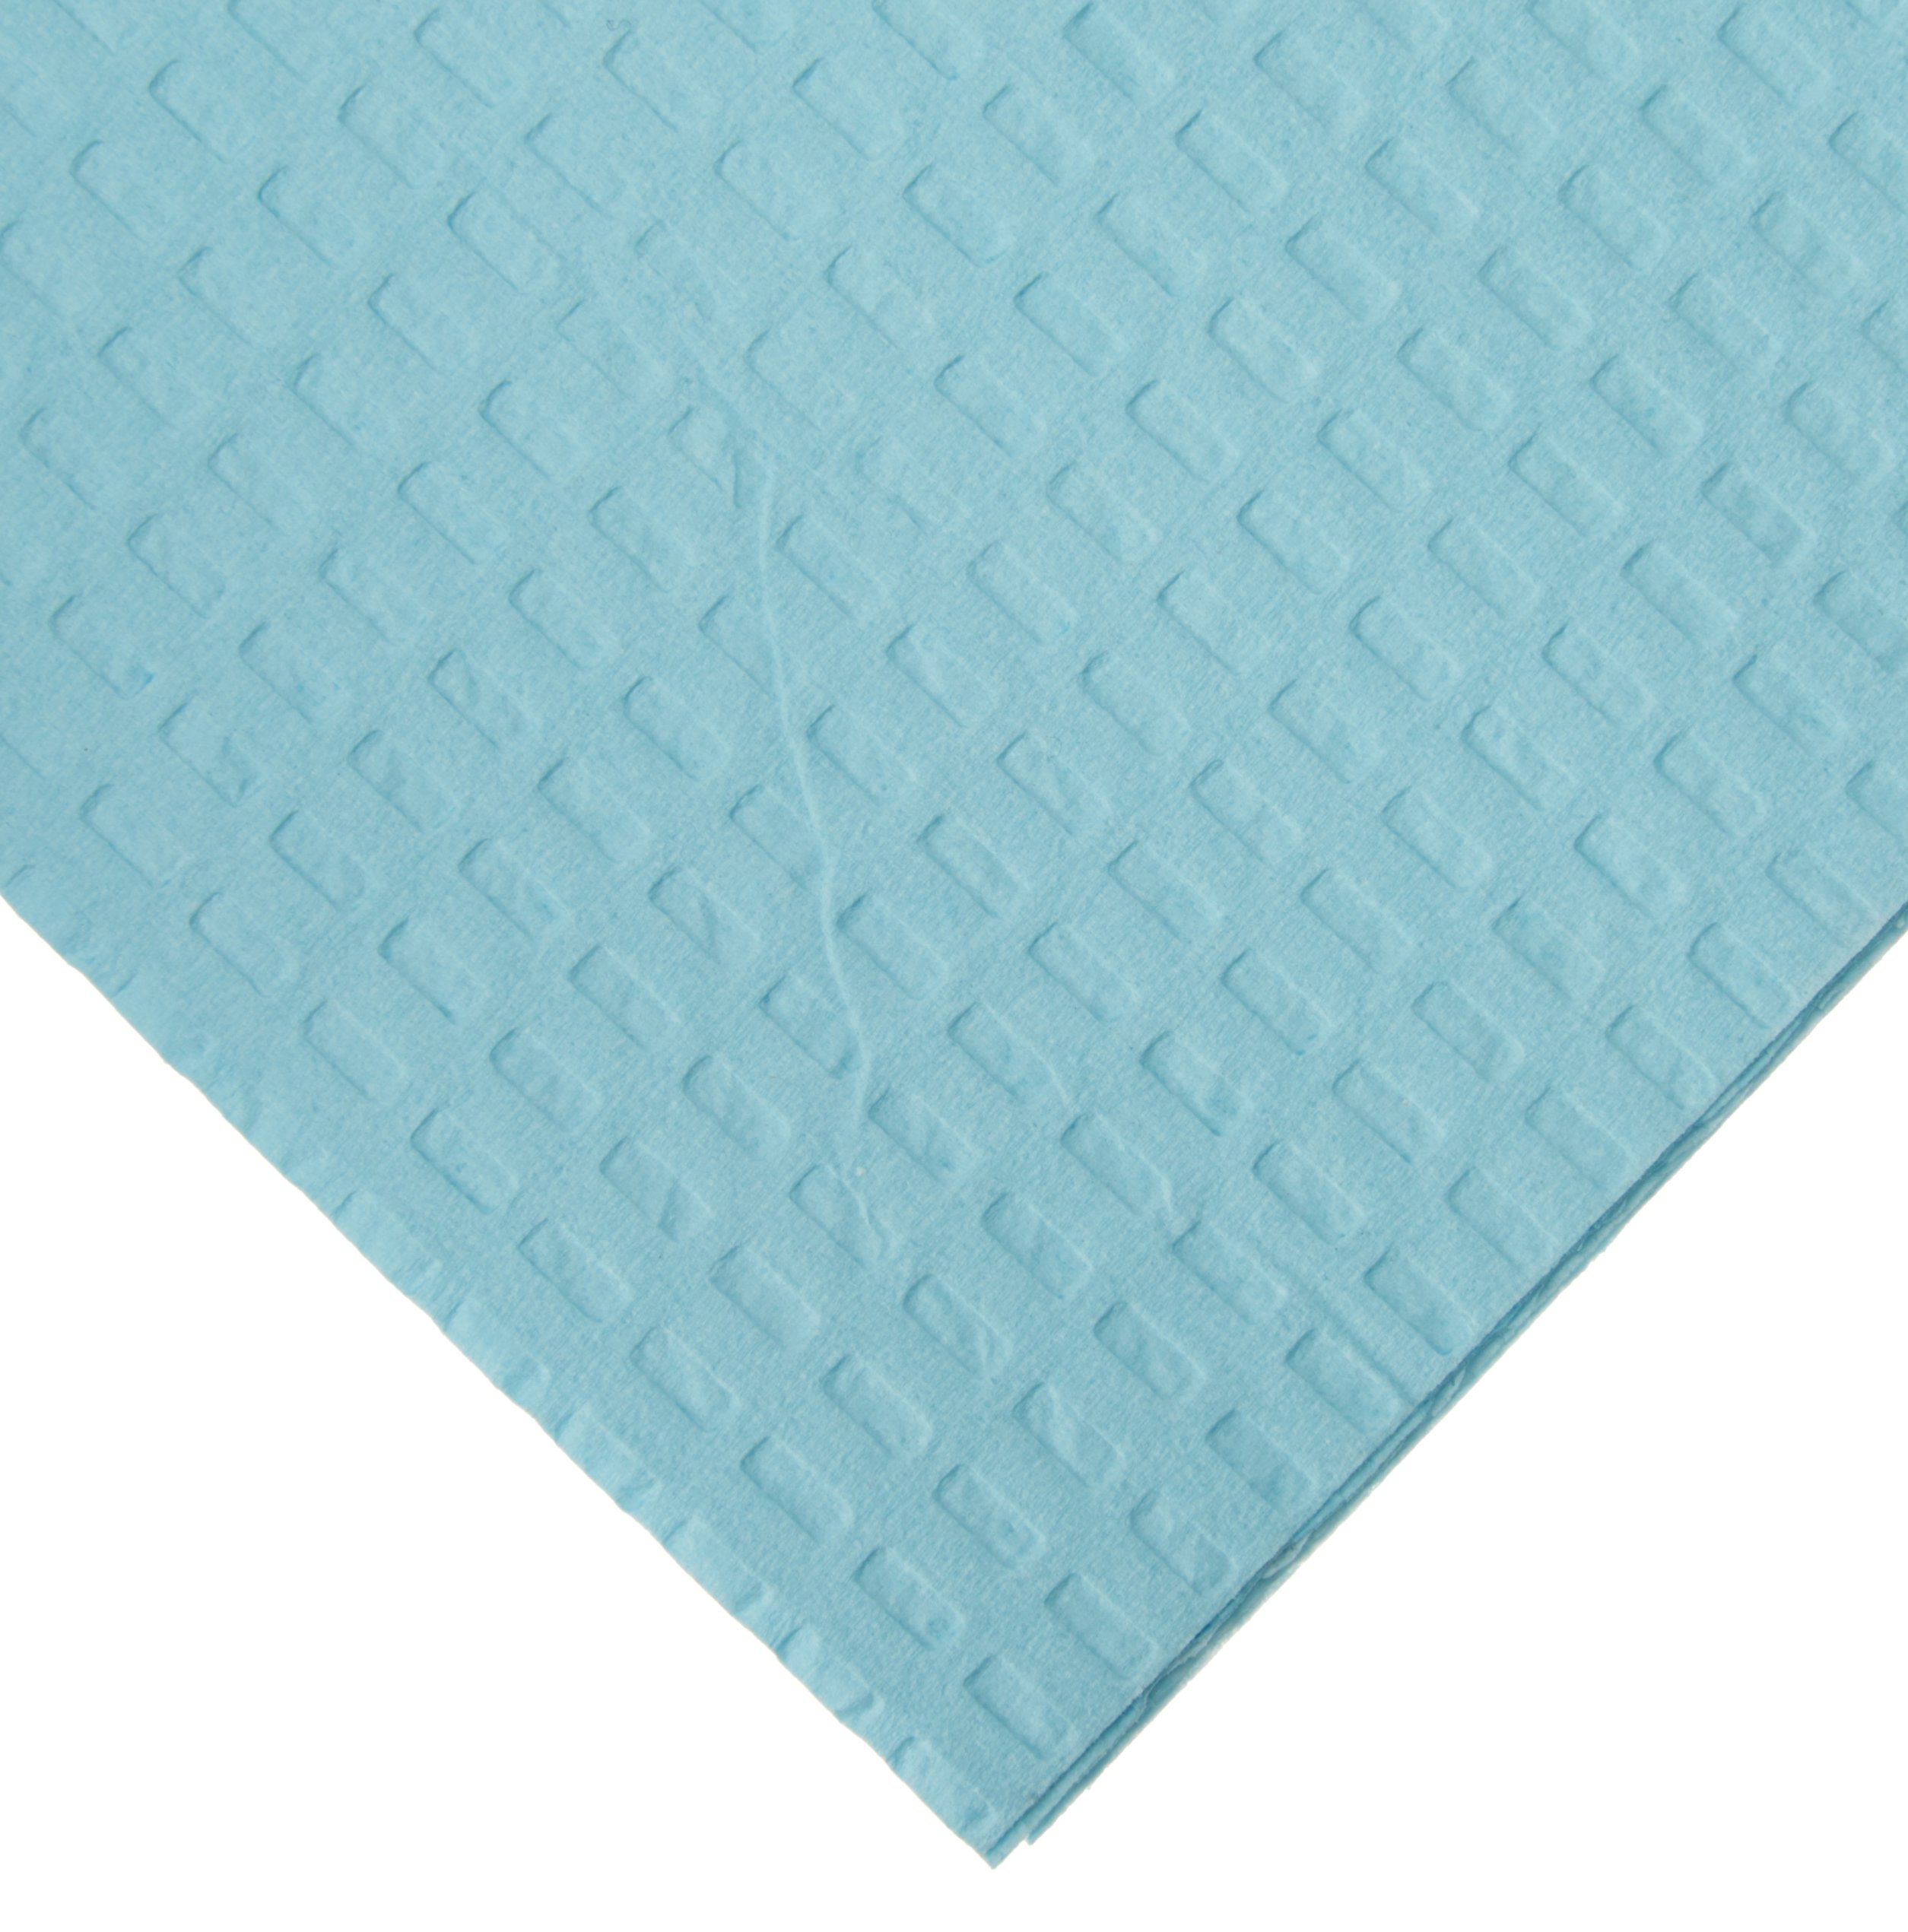 TIDI Products 917403 3-Ply Tissue/Poly Patient Bib/Towel, Waffle Embossed, Blue, 13'' Length x 18'' Width (Pack of 500)